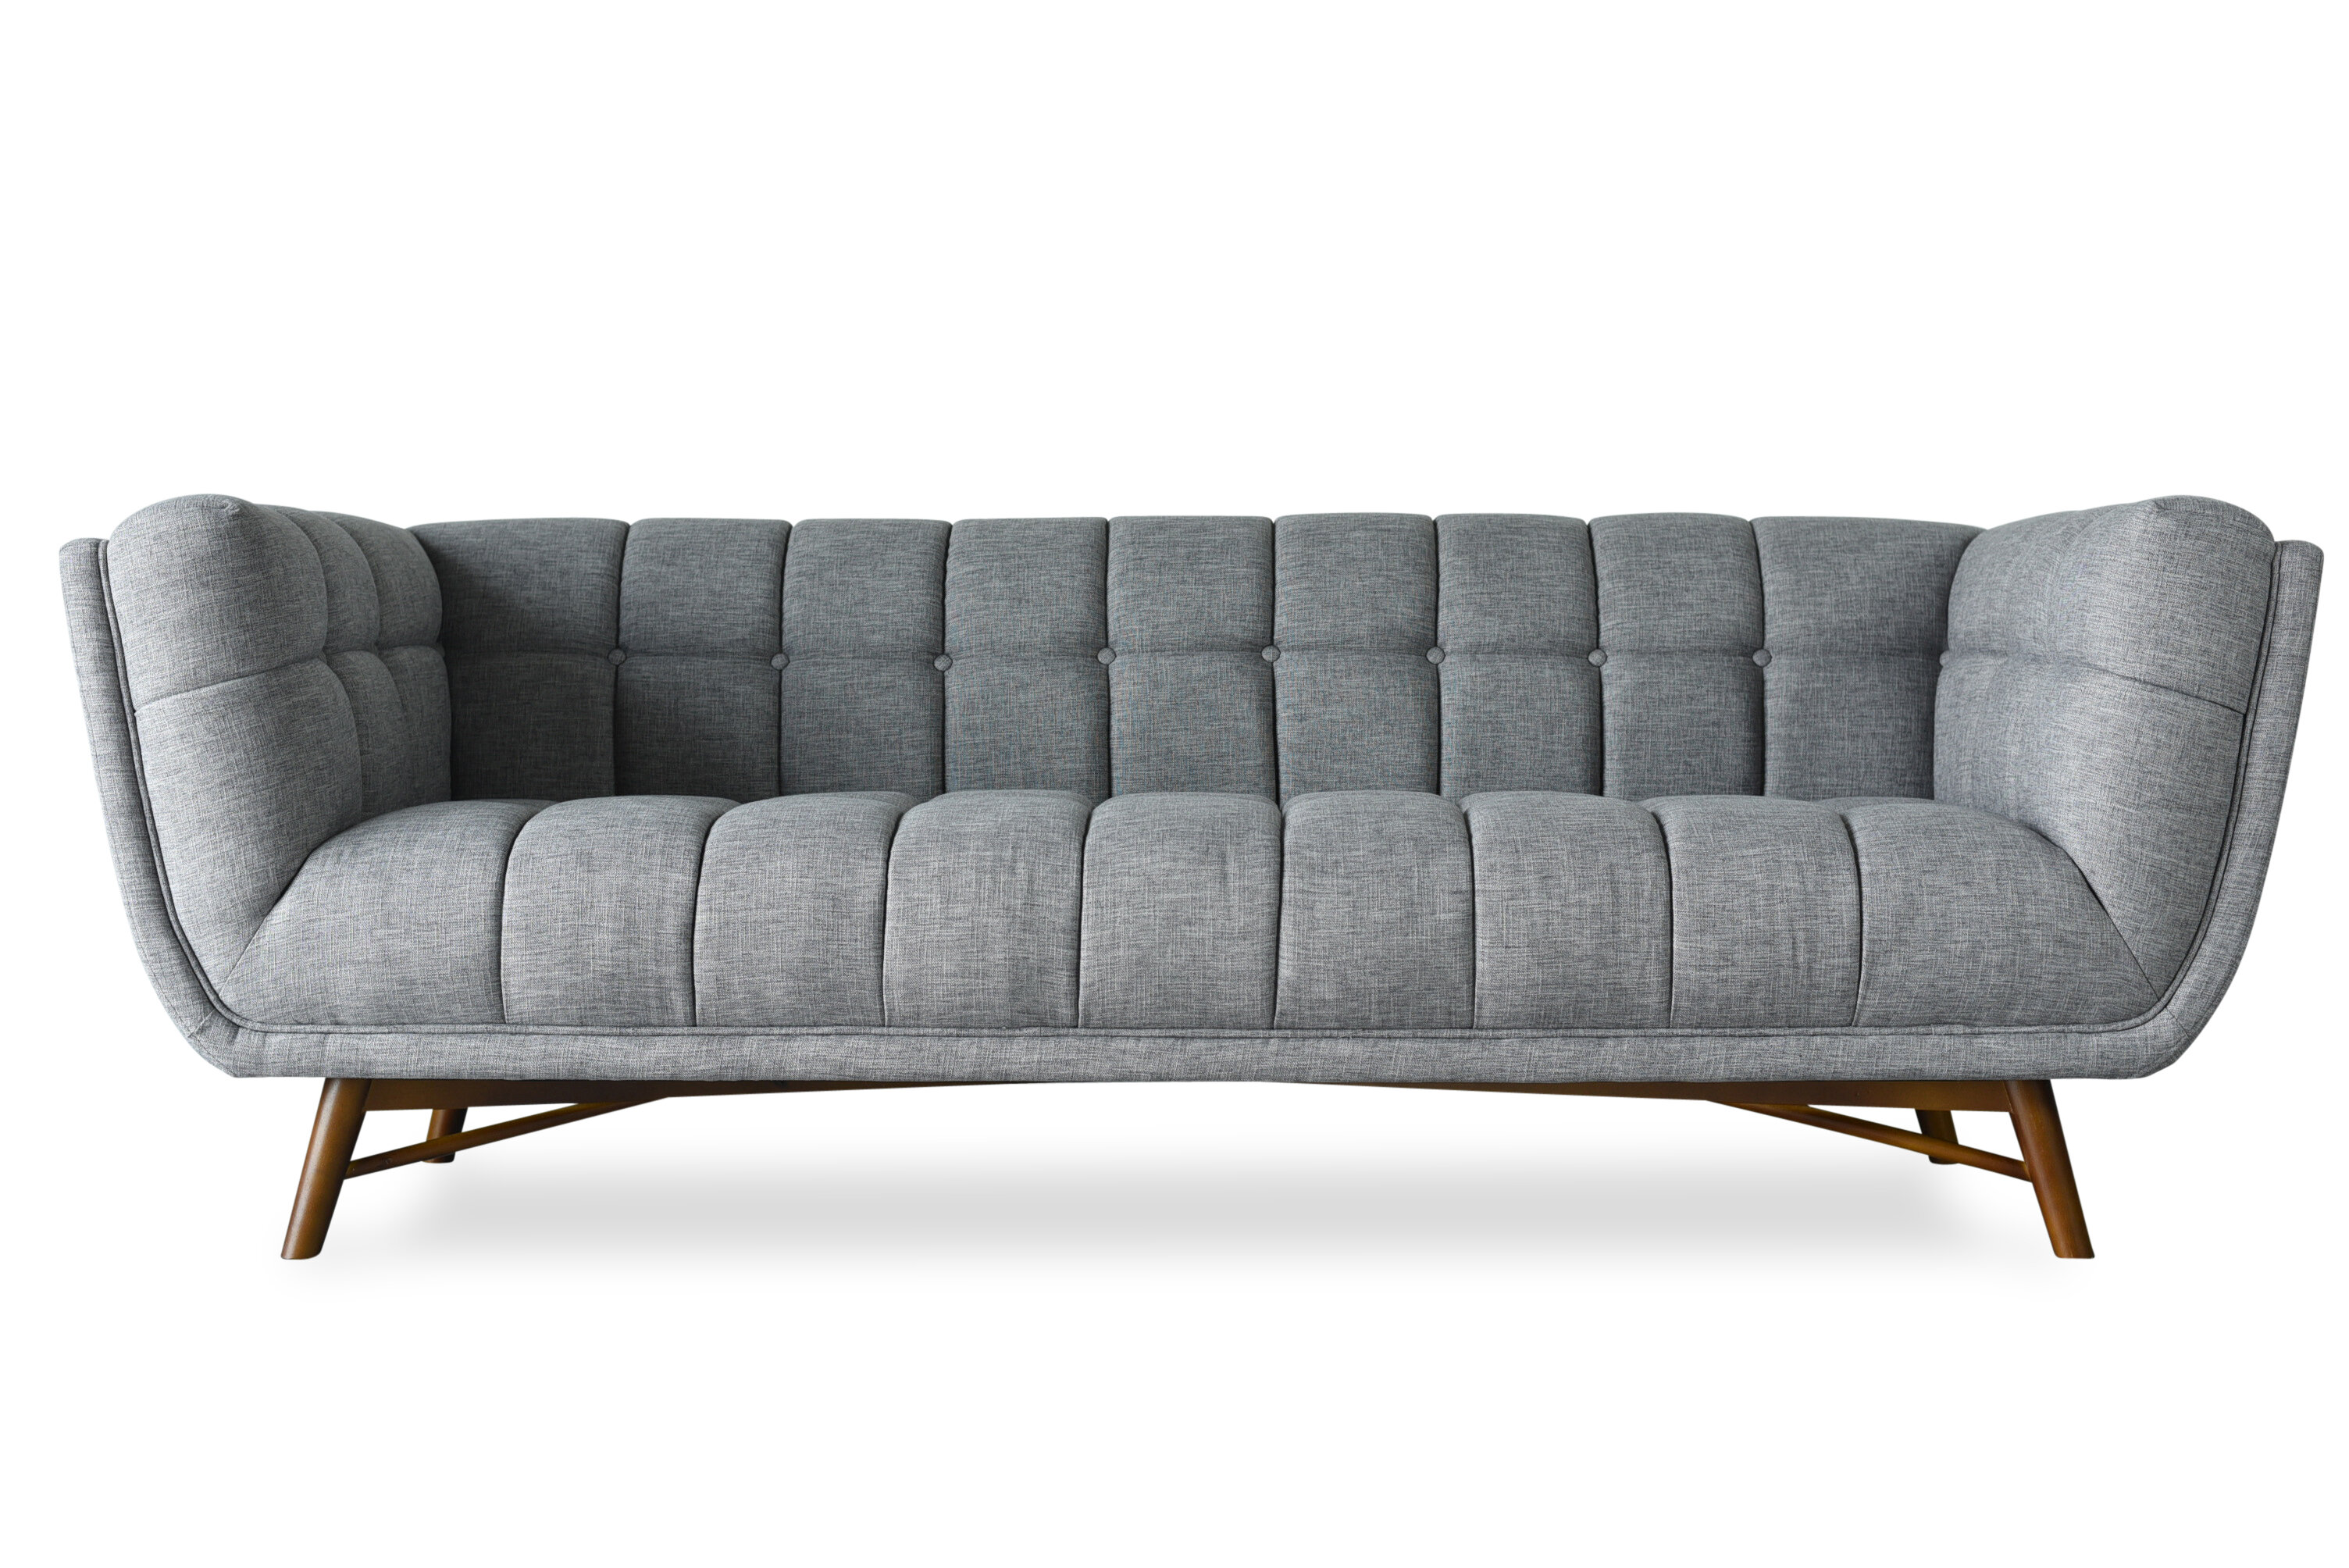 Claris Mid-Century Modern Chesterfield Sofa